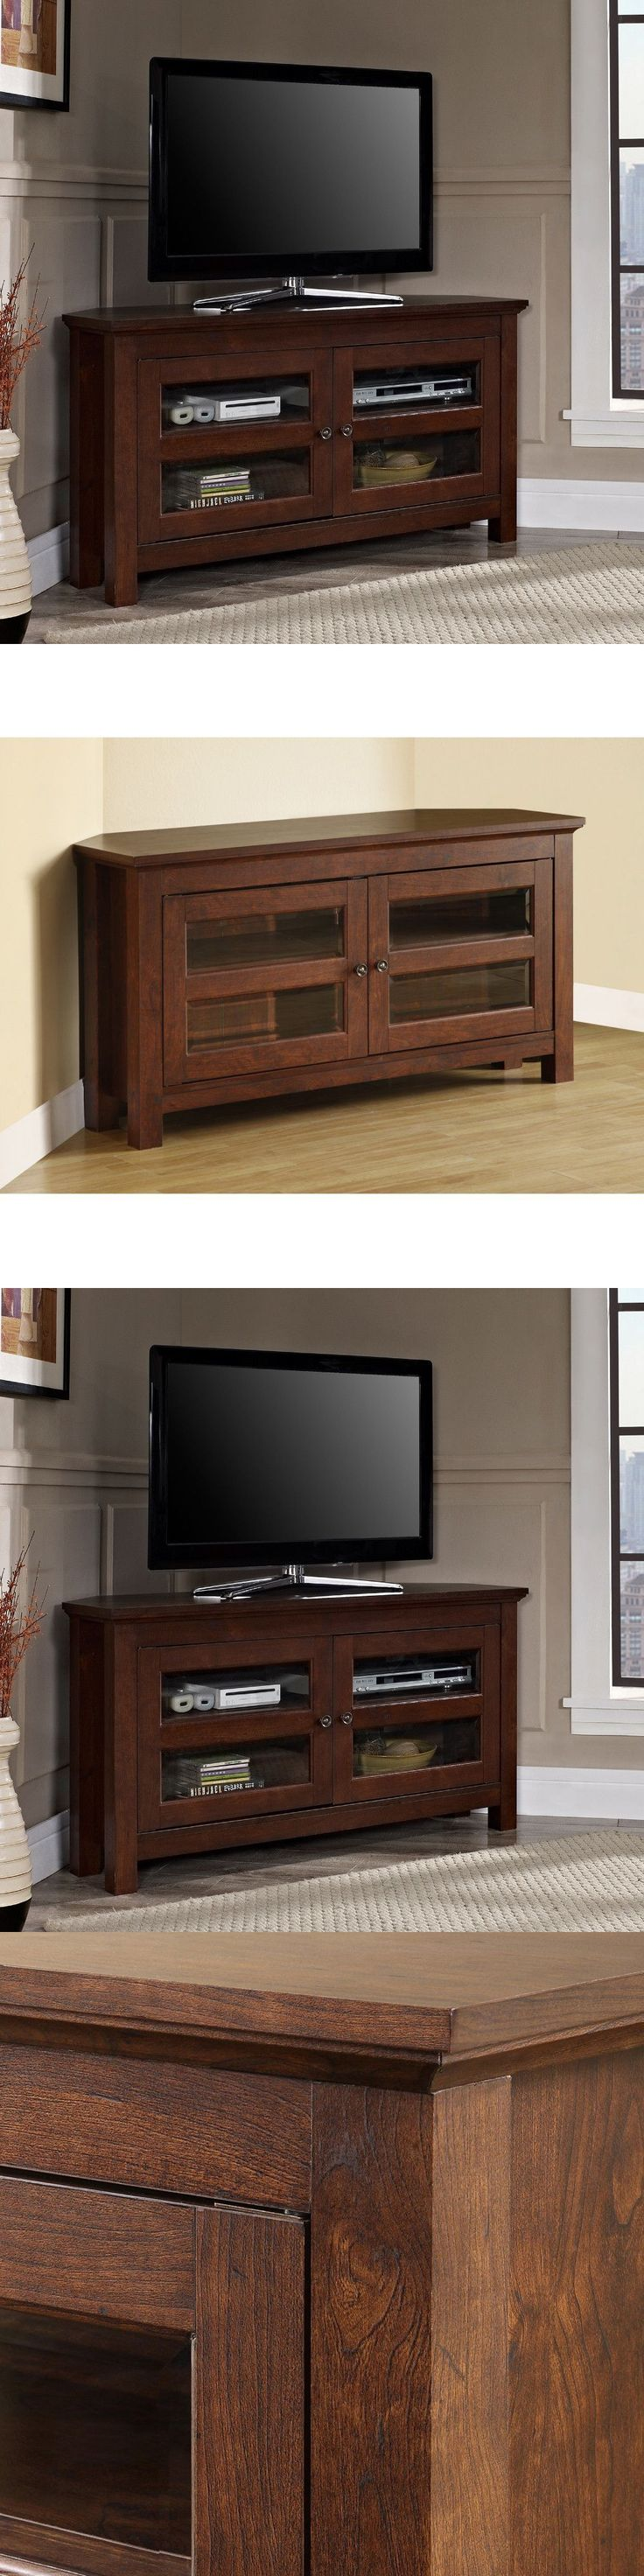 Television Tables Living Room Furniture 17 Best Ideas About Tv Stand Corner On Pinterest Tv Stand